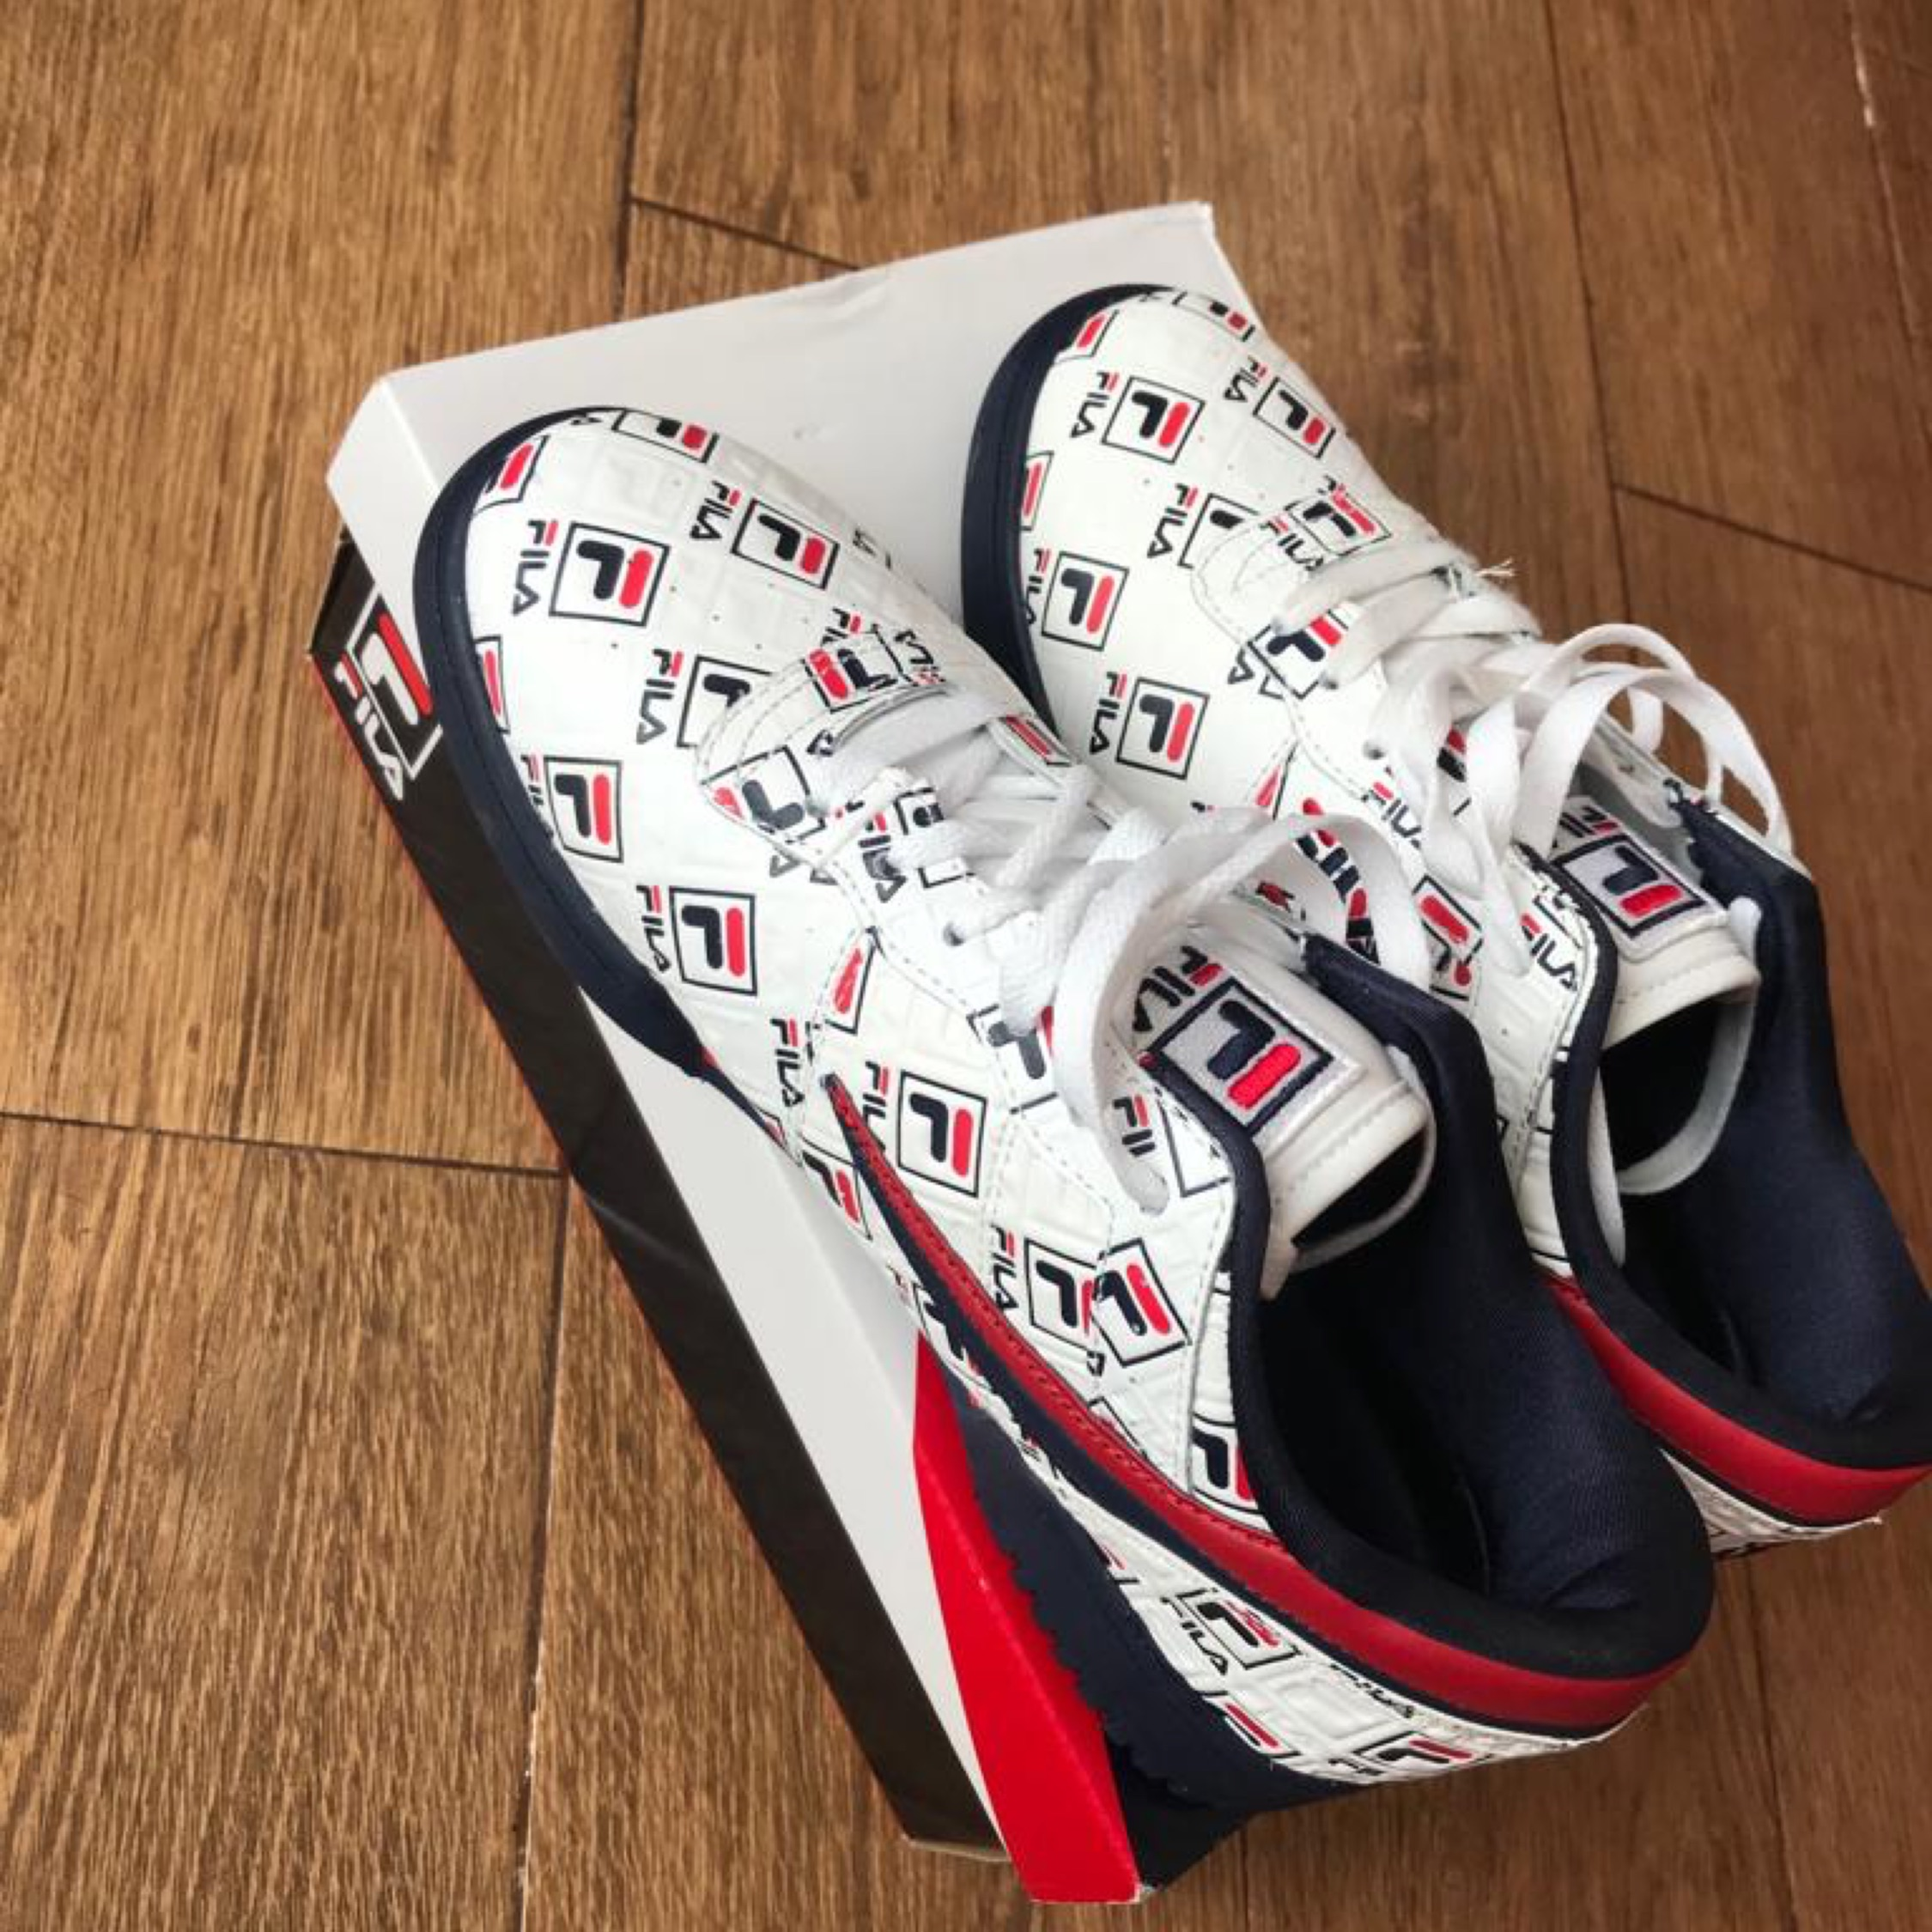 Fila Sneakers Og Special Edition 2018